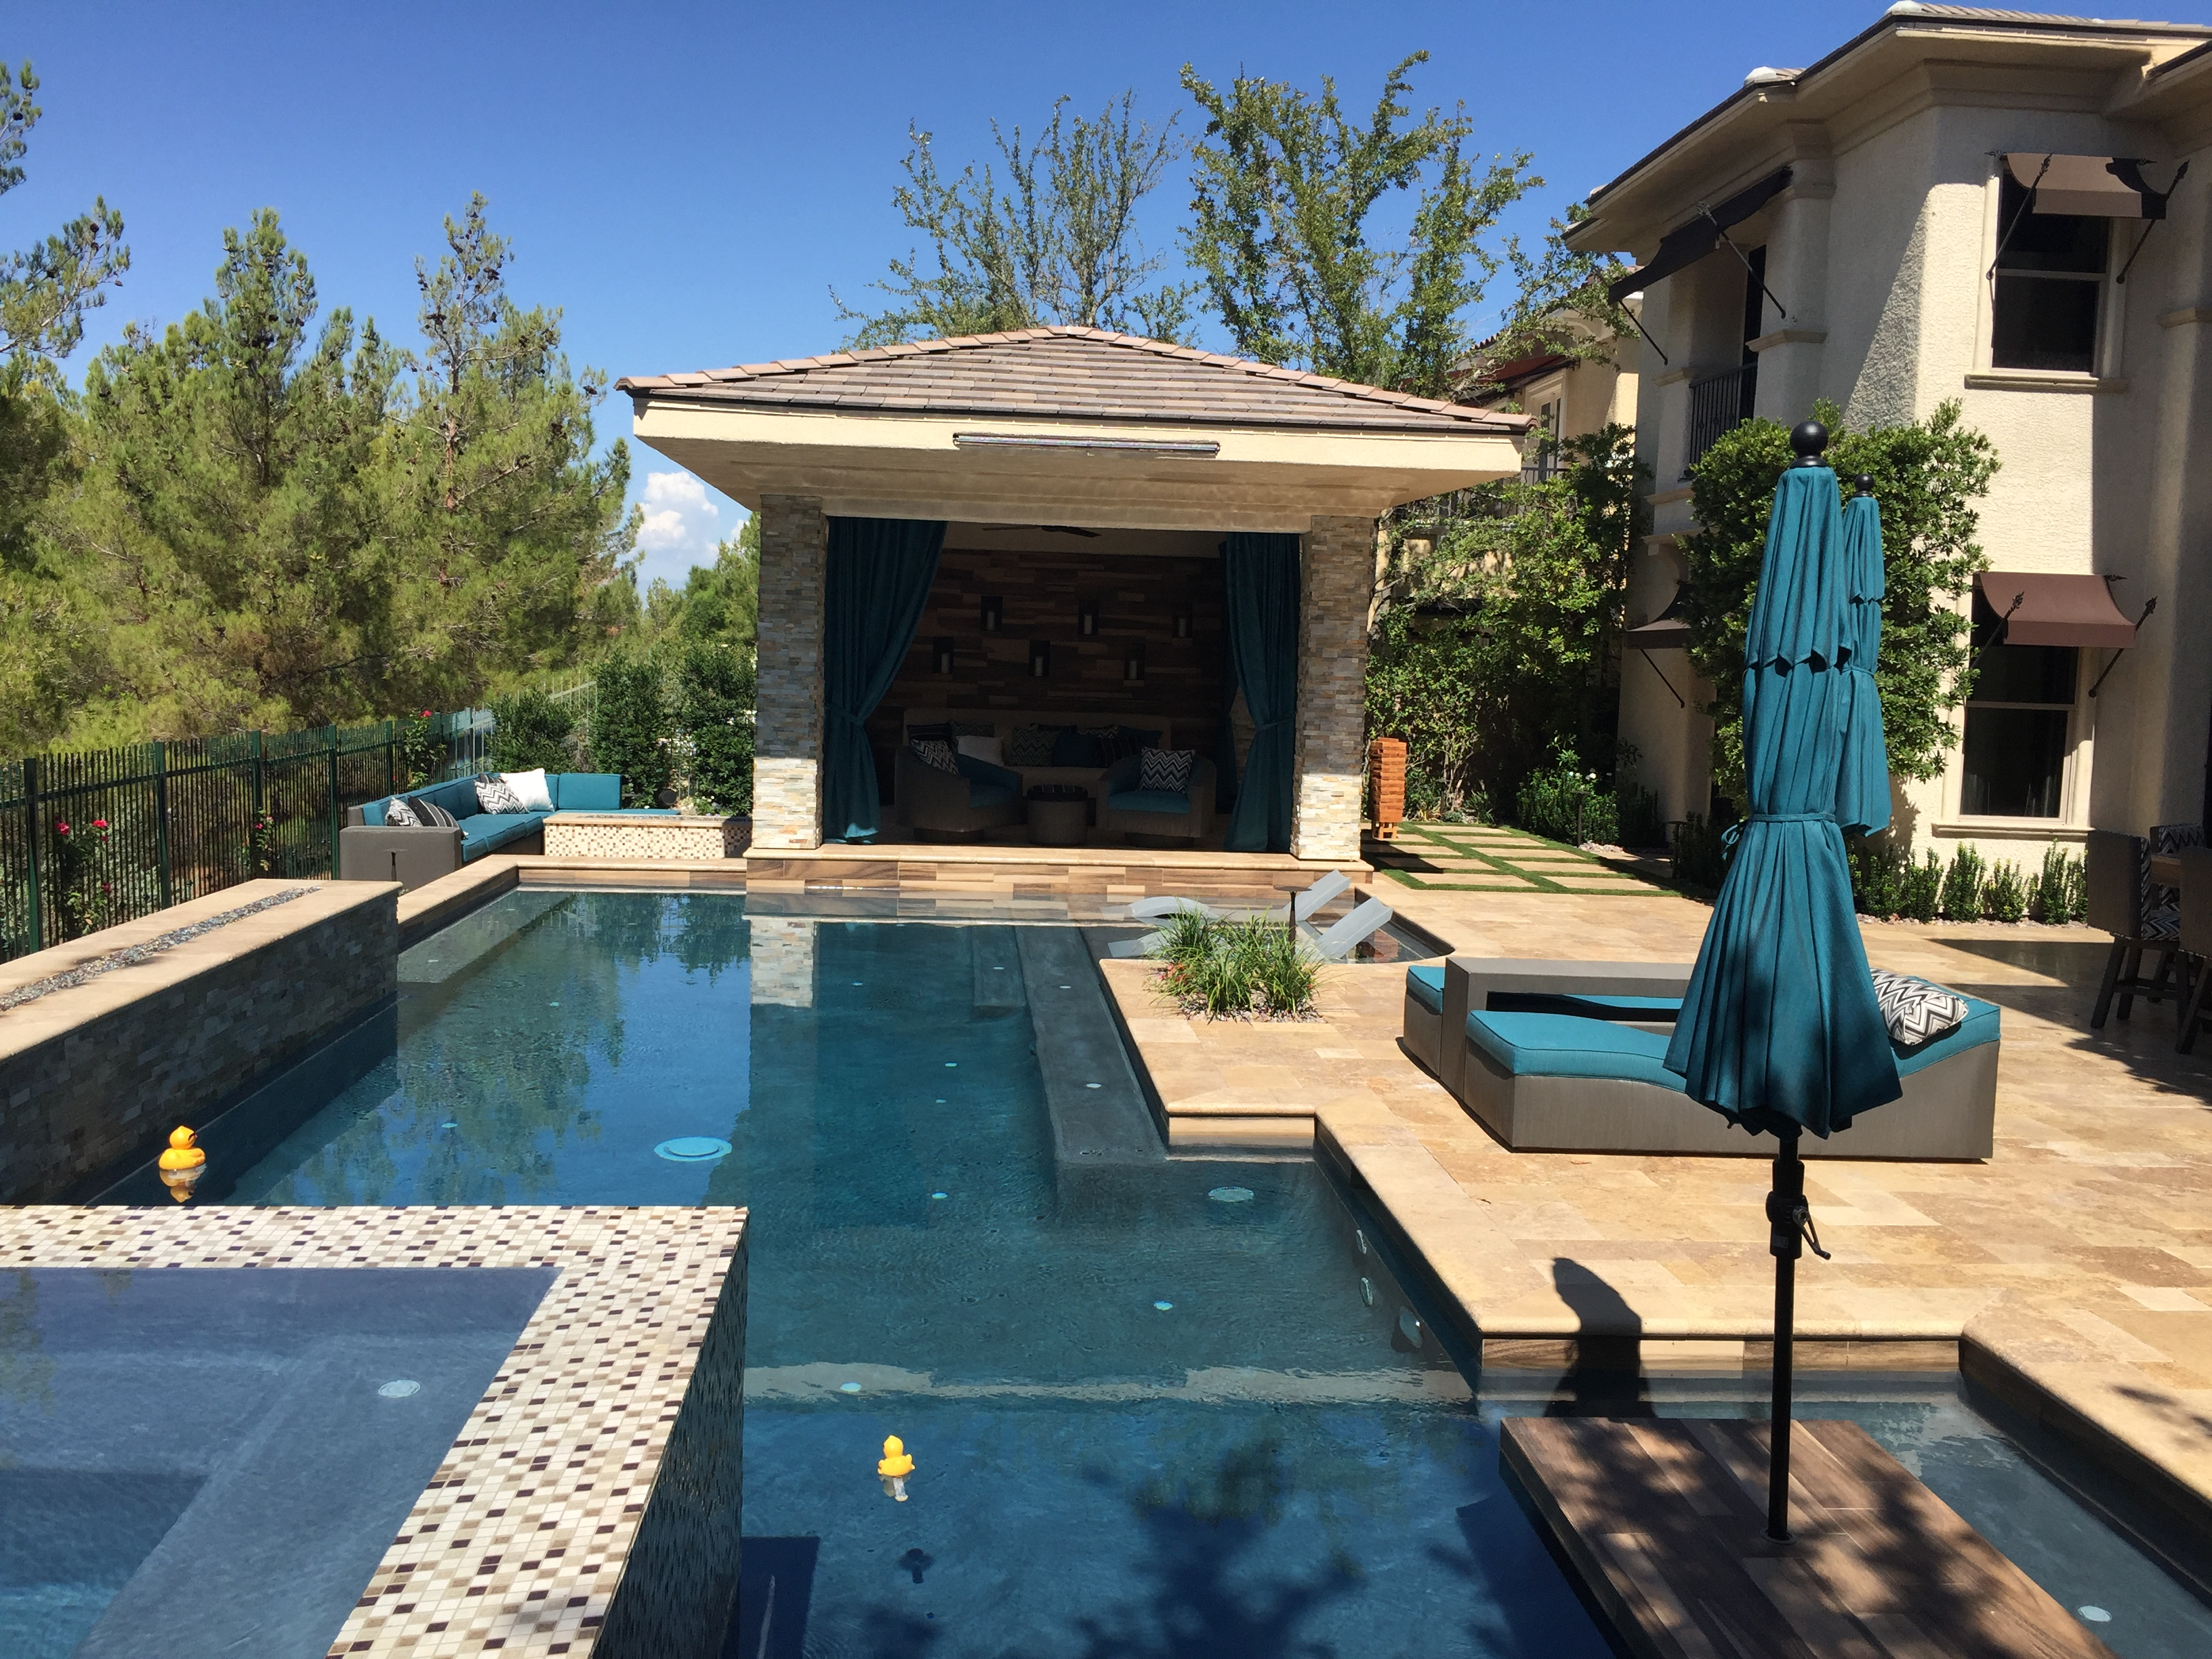 Backyard Resort Las Vegas Pool Design Pool Contractor Pool Builder Pool Construction By Green Planet Landscaping And Pools Inc Damon Lang,Software Company Office Interior Design